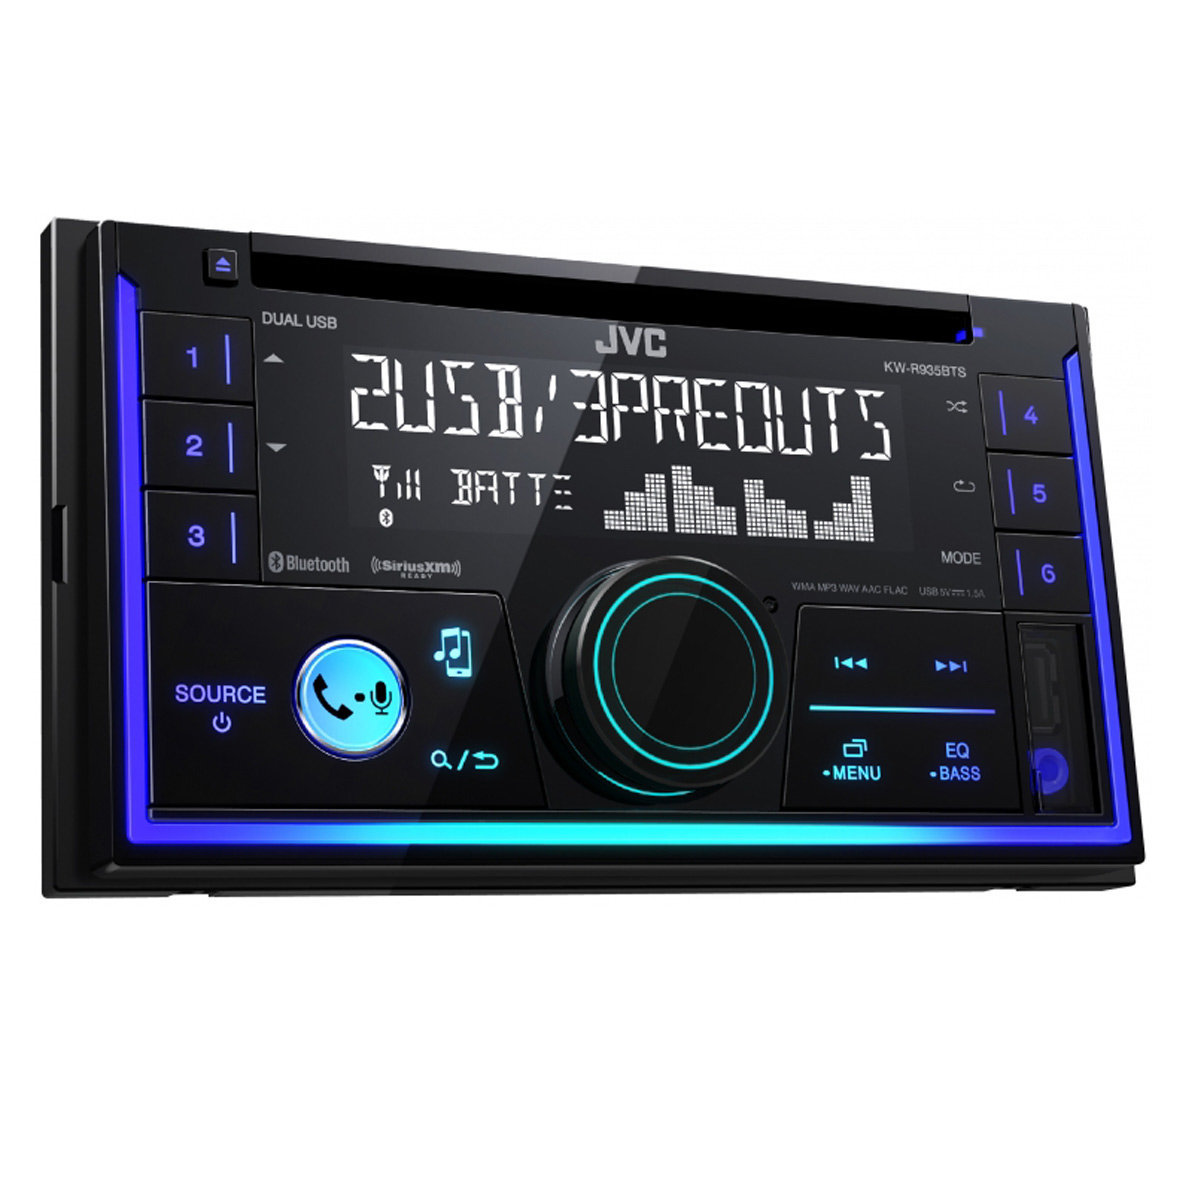 [DIAGRAM_09CH]  JVC KW-R935BTS Double-DIN CD Receiver w/ Bluetooth and Dual USB Inputs |  World Wide Stereo | Jvc Car Stereo Wiring Harness Pattern 530 |  | World Wide Stereo